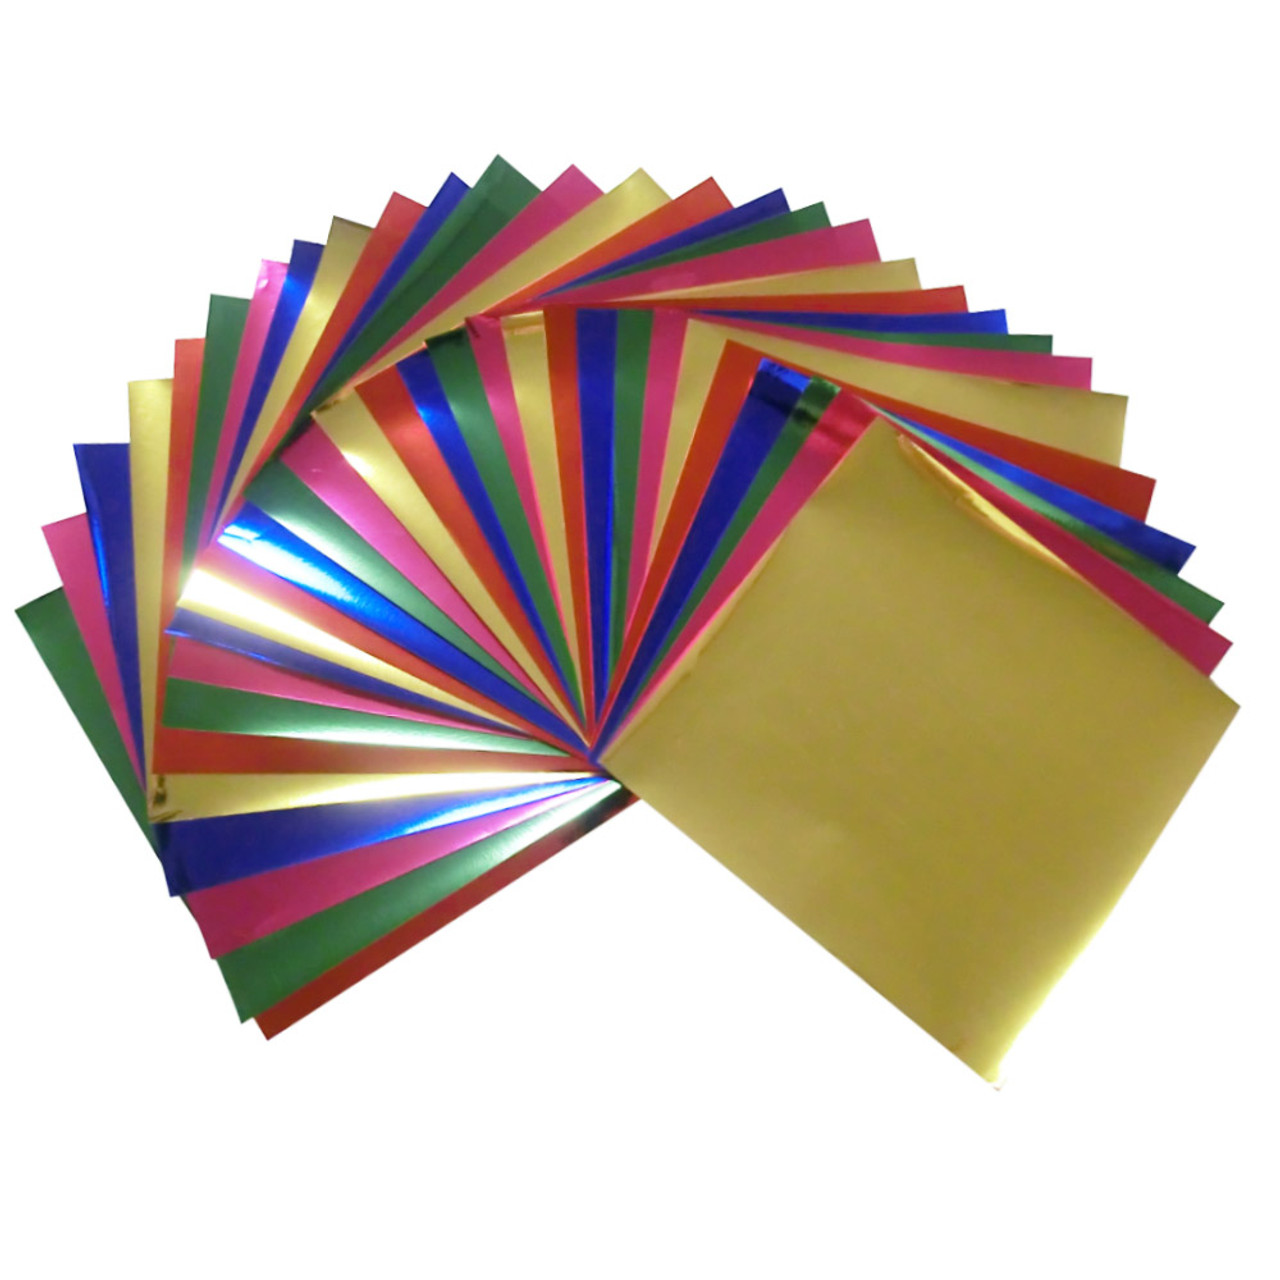 - 7.9x7.9inches Large Foil Color Origami Folding Paper, Metallic